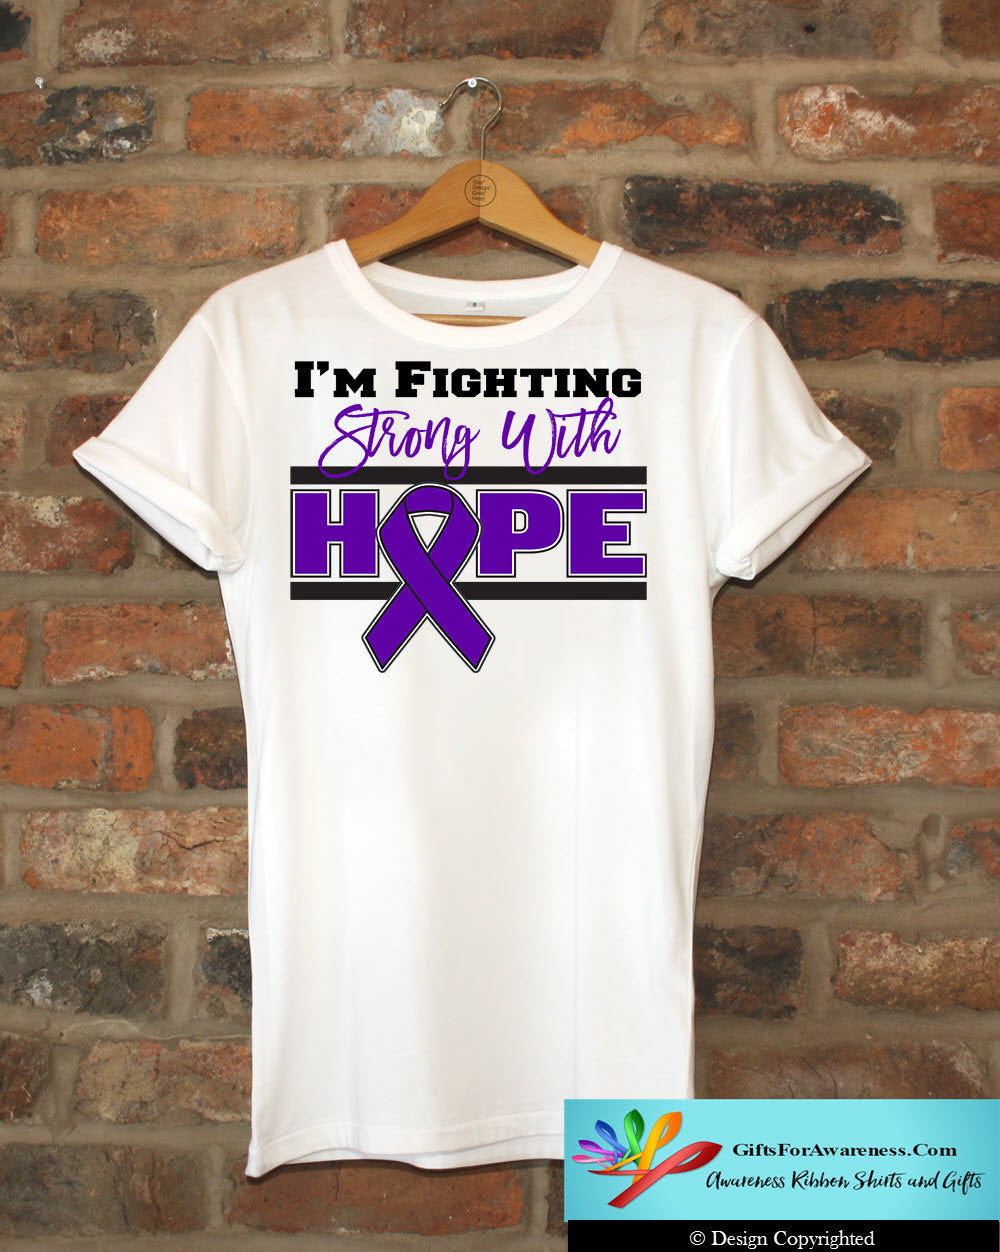 Pancreatic Cancer I'm Fighting Strong With Hope Shirts - GiftsForAwareness